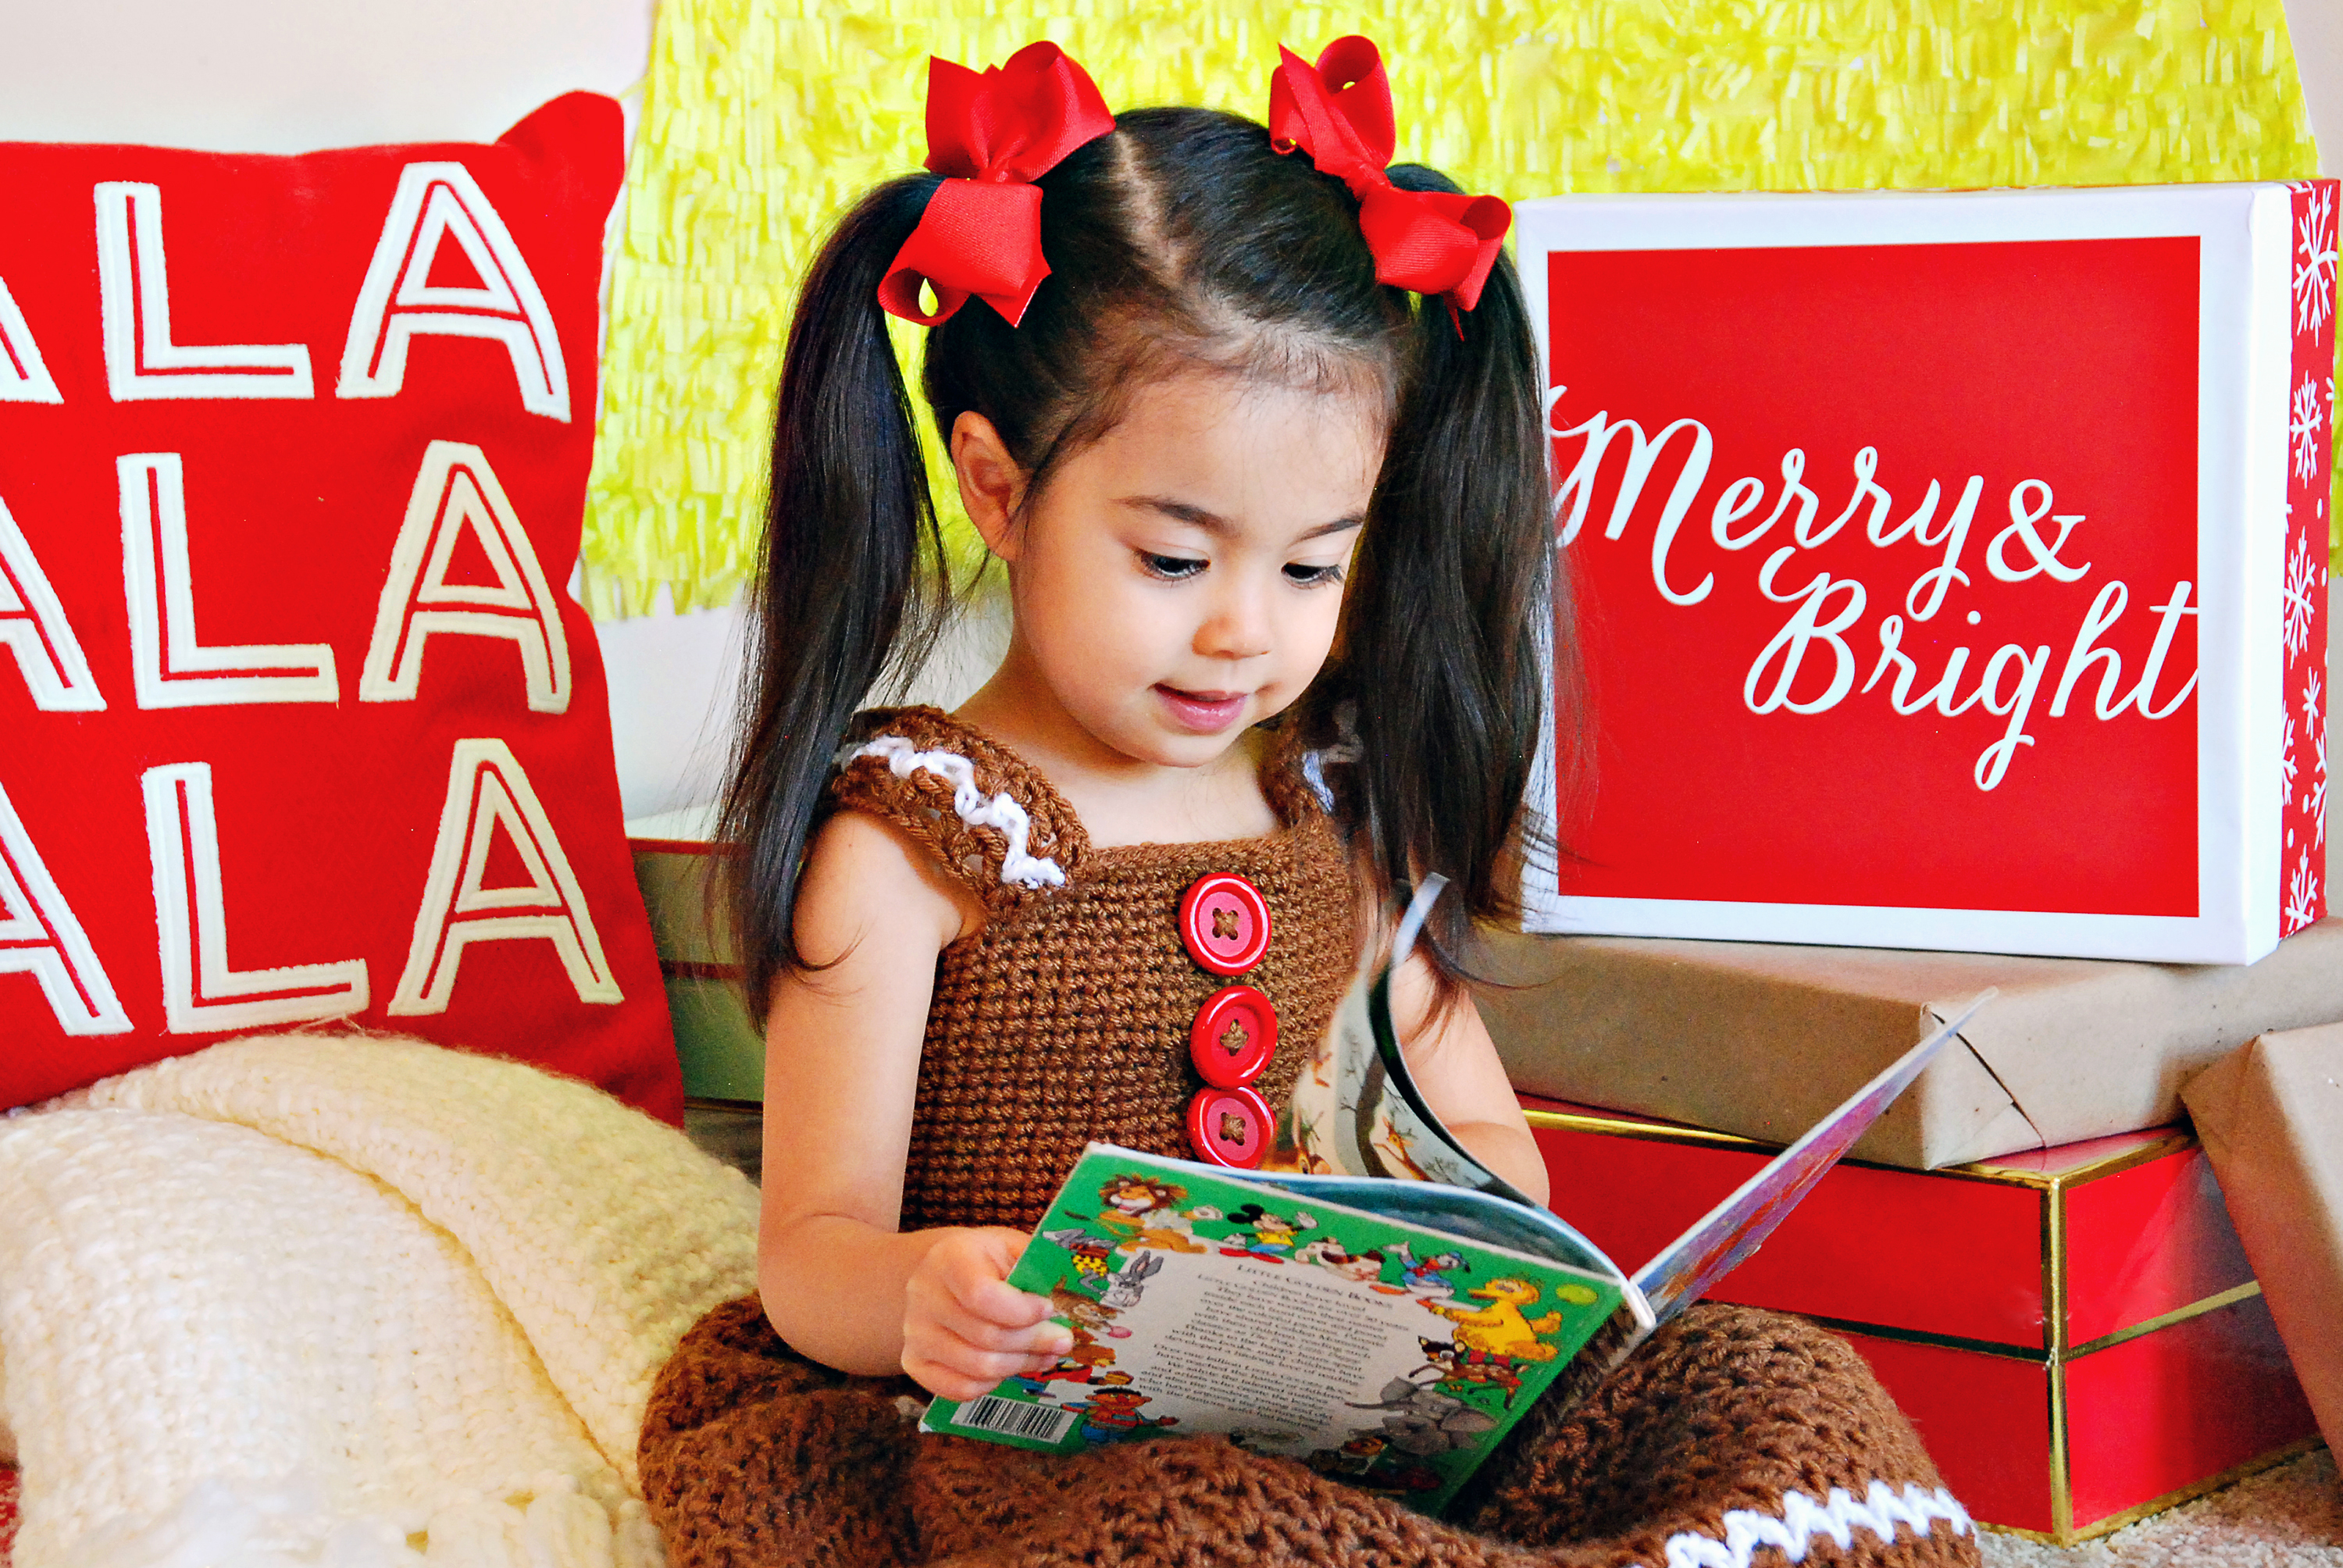 A girl sitting in a Christmas studio setting, reading a children's book.